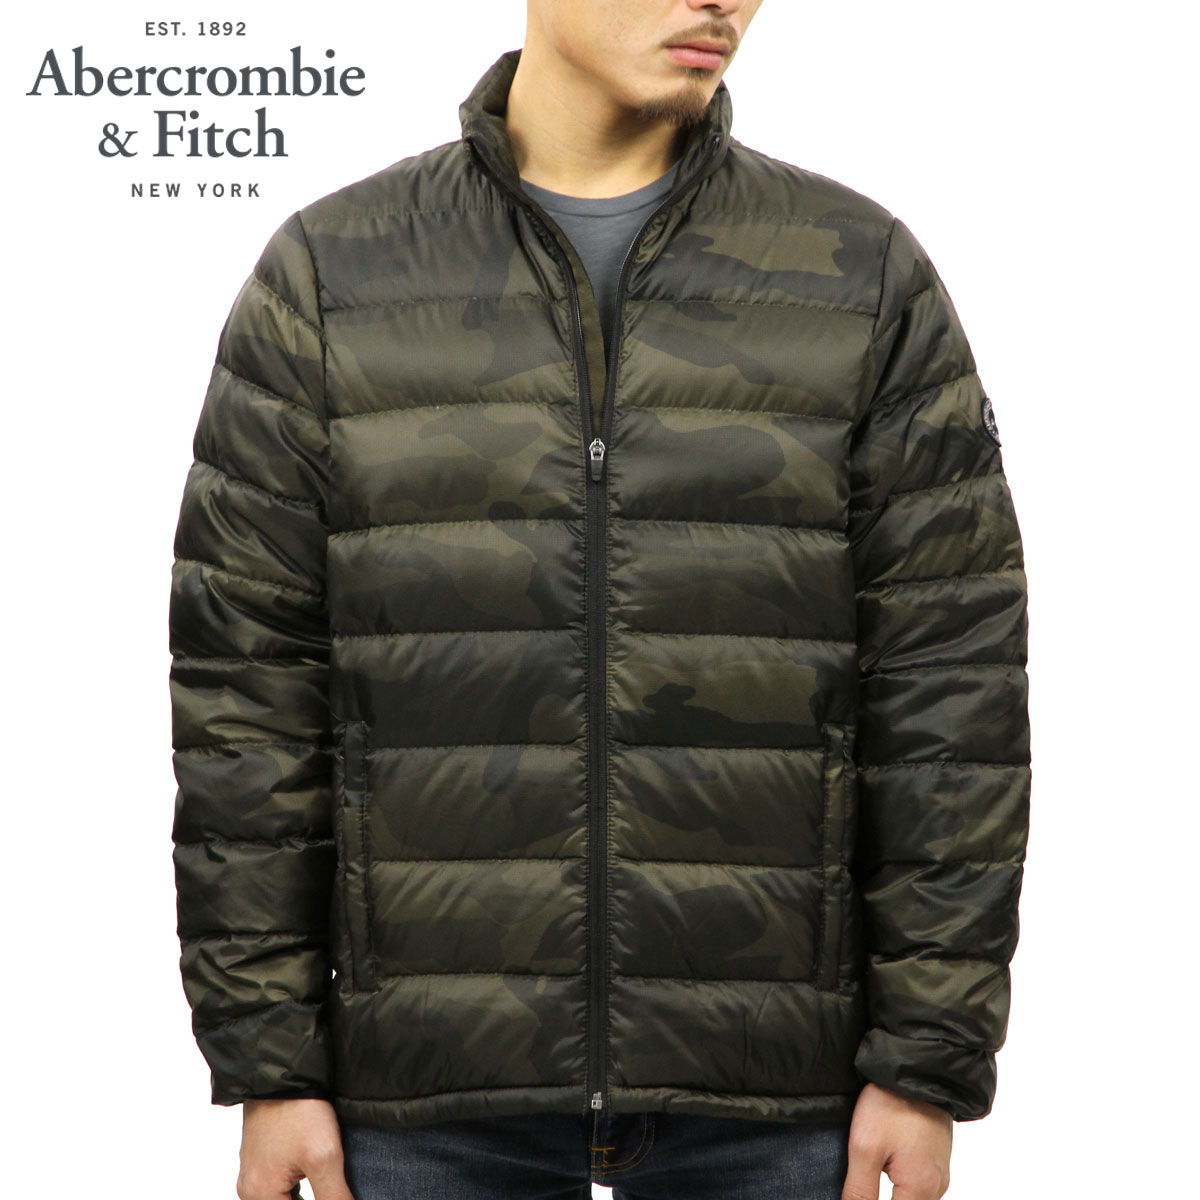 7e57cfe28 ABBA black down jacket men's regular article Abercrombie & Fitch outer  jacket LIGHTWEIGHT DOWN-FILLED PACKABLE PUFFER 132-328-1200-308